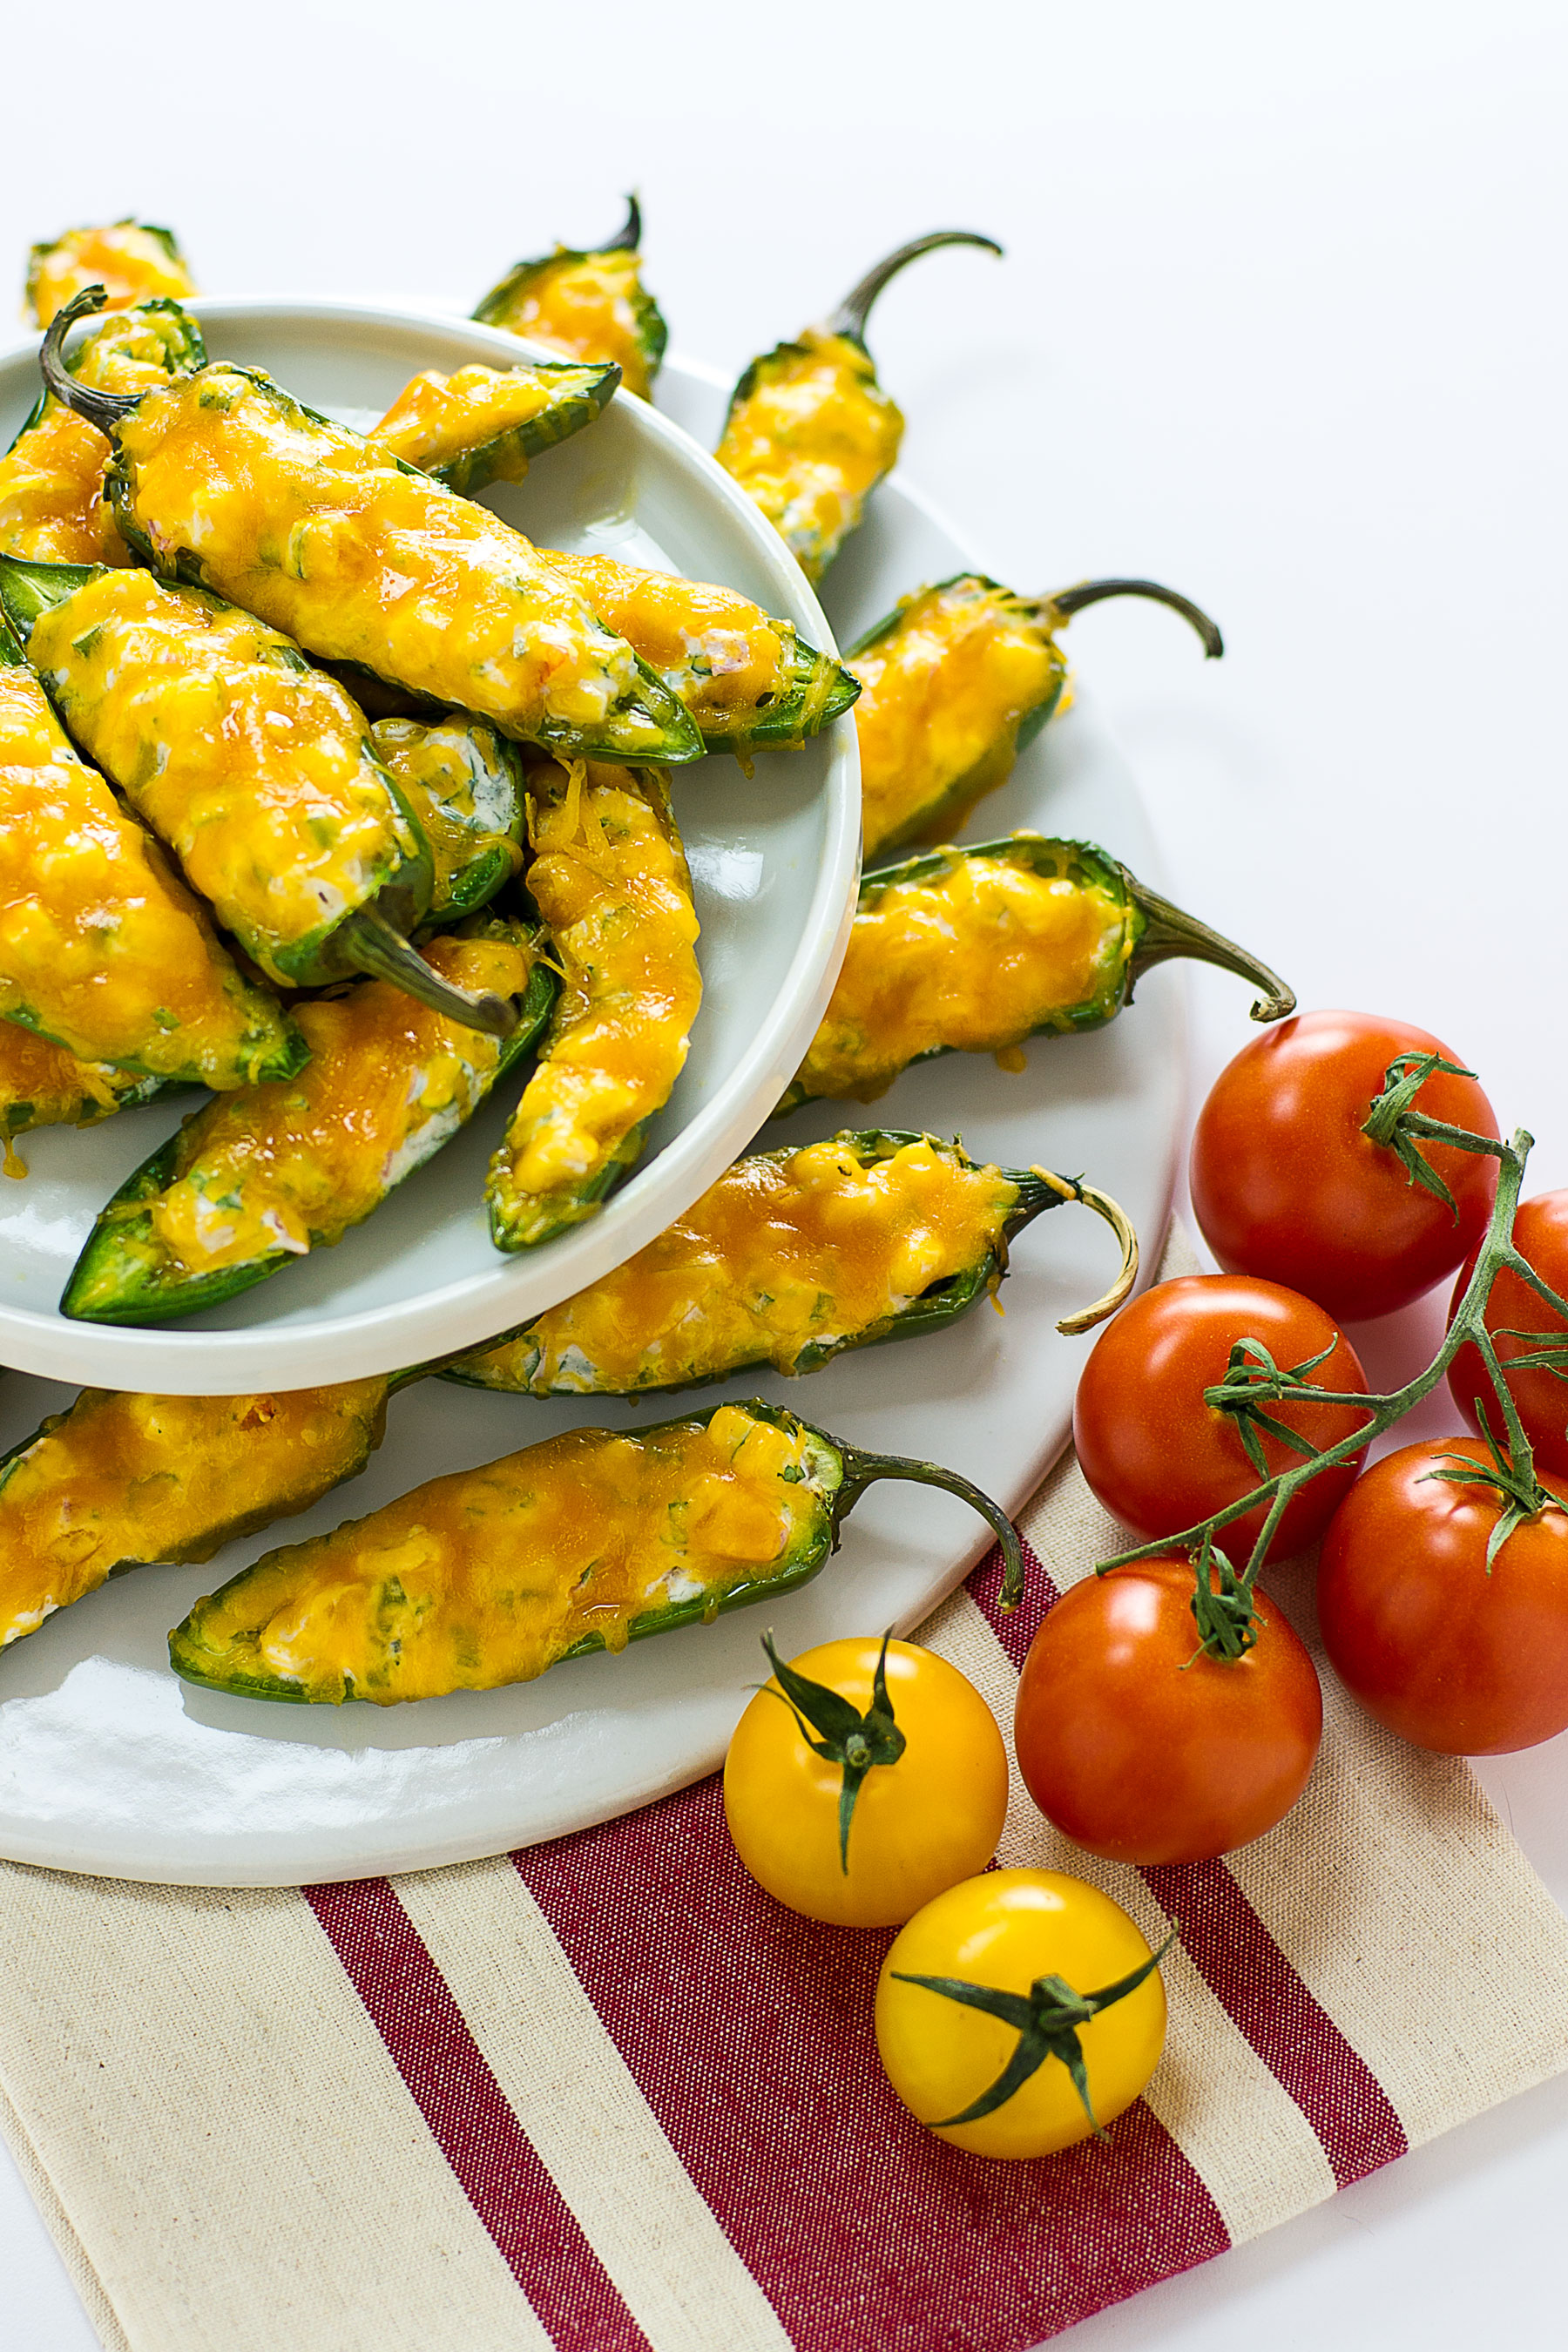 Jalapeño Poppers by Sam Henderson of Savour Imagery for SUSNSET®